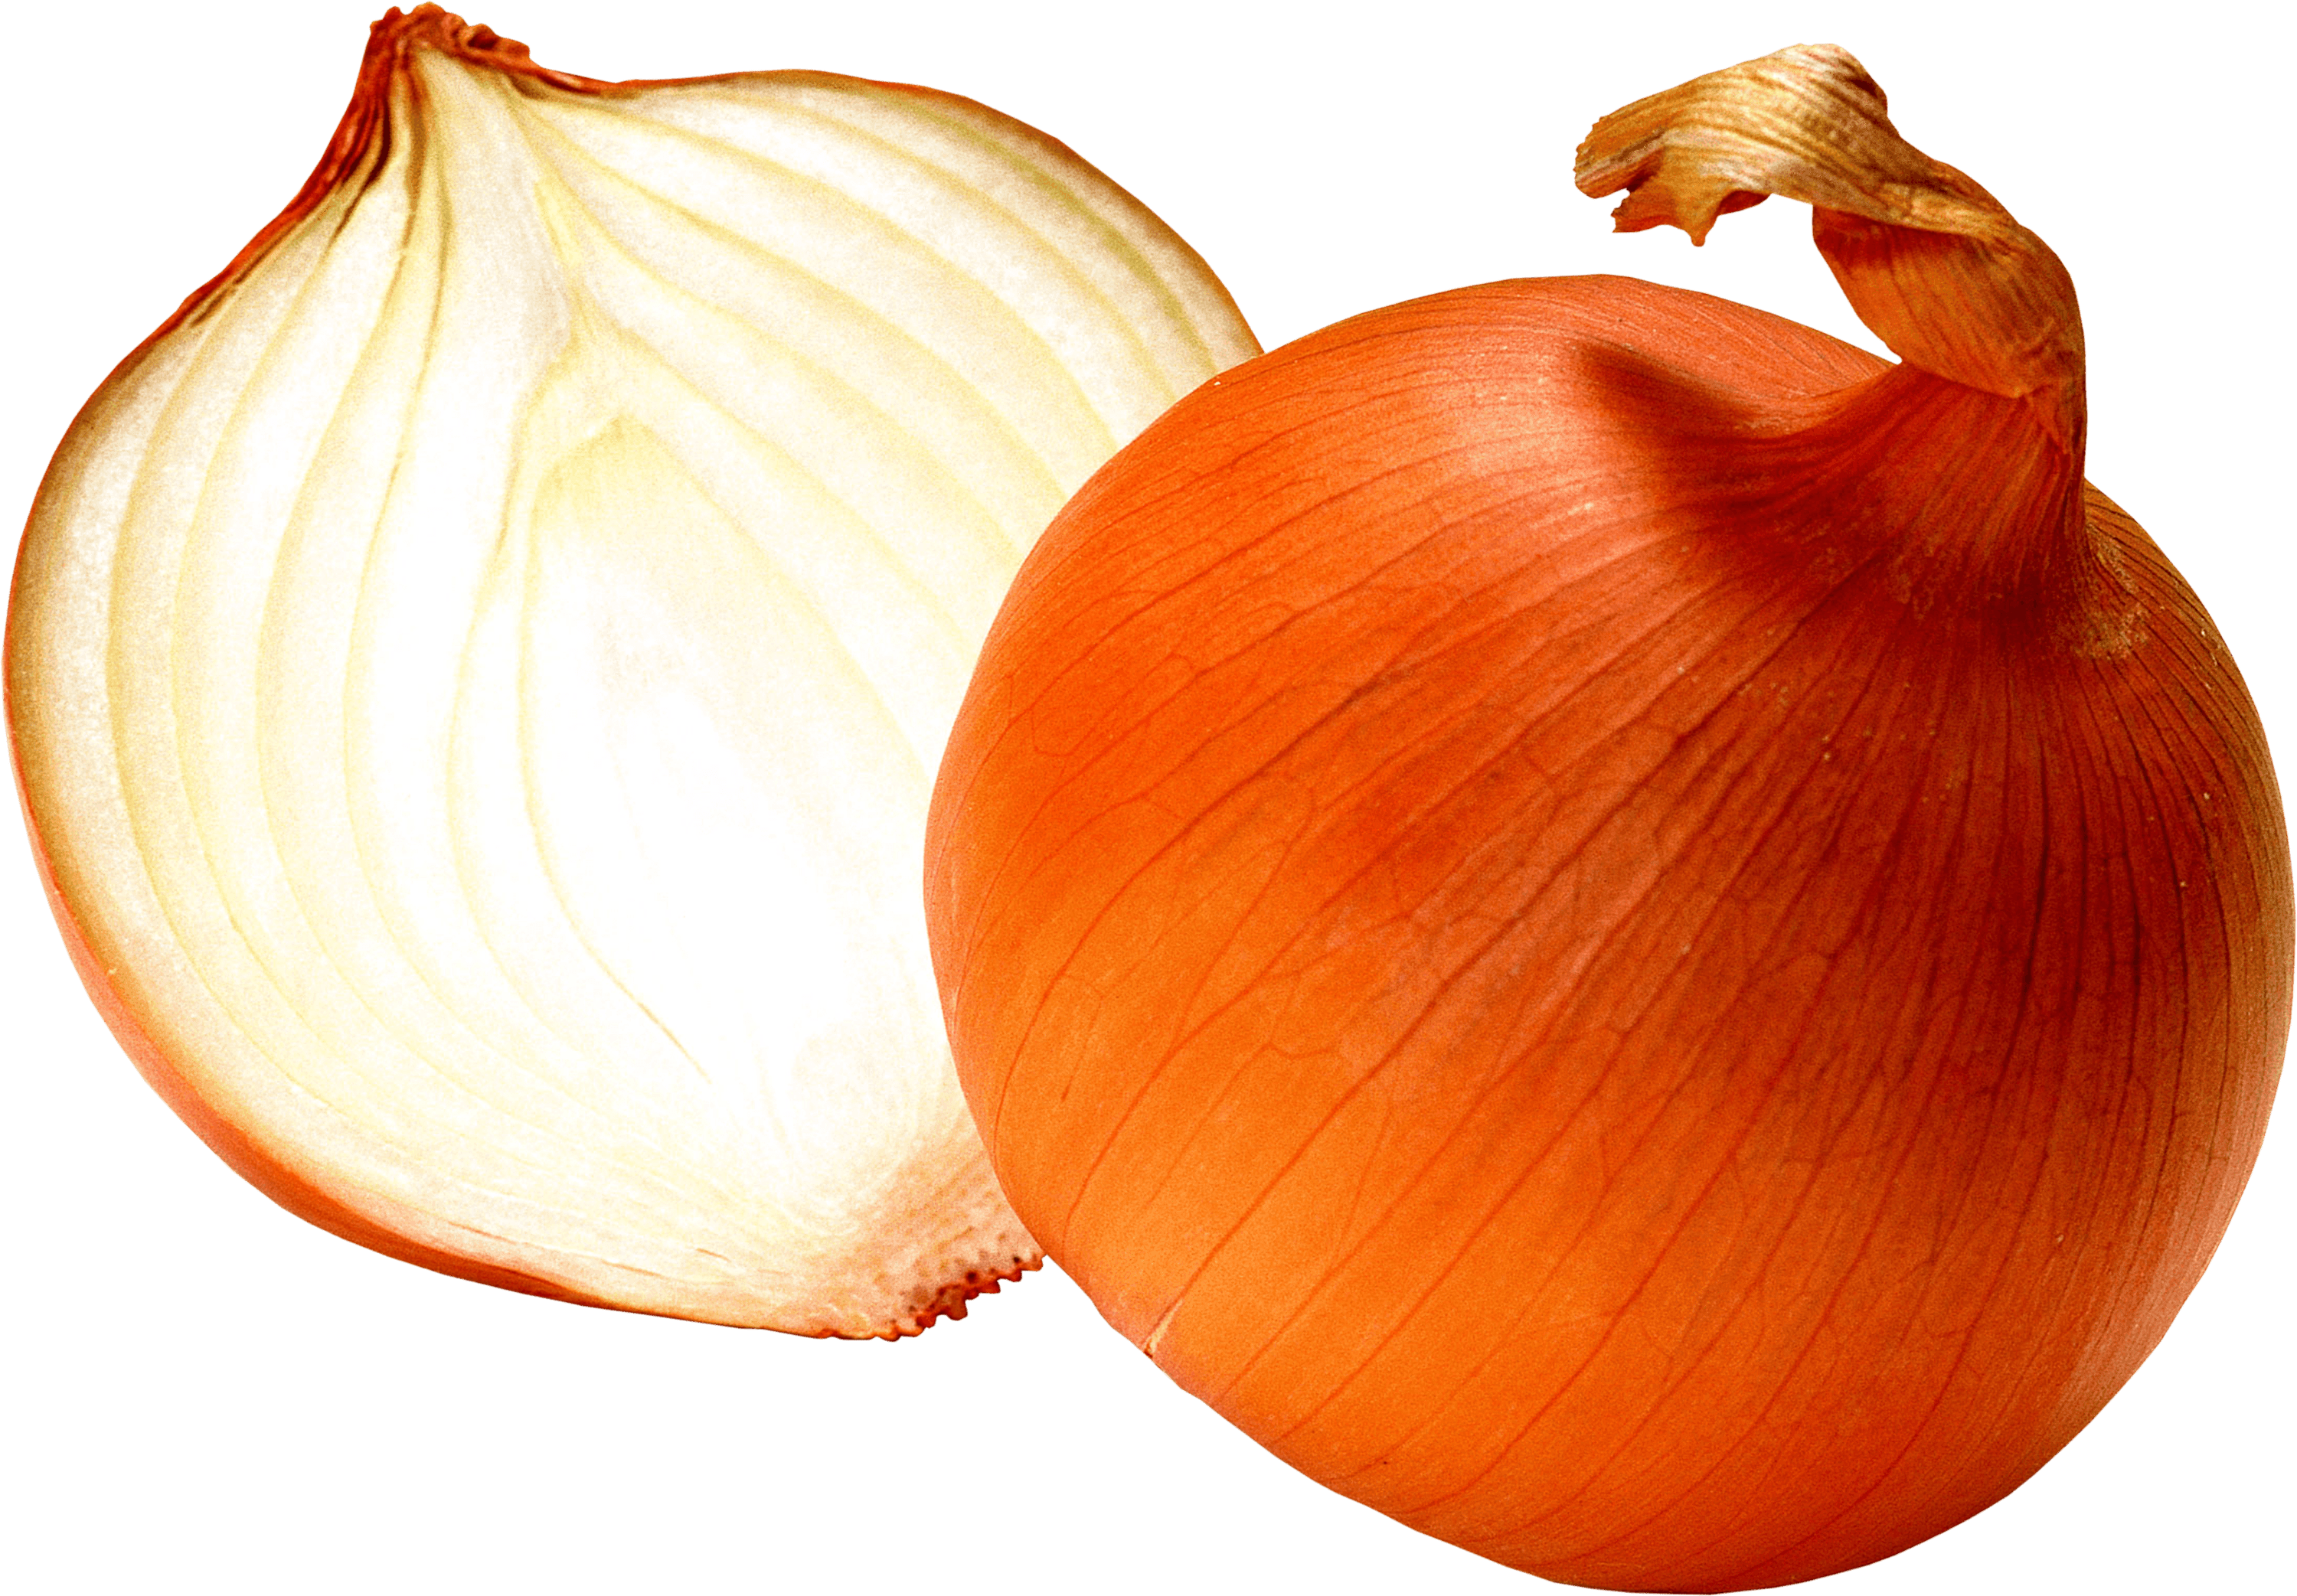 Red onion transparent png. Garlic clipart shallot